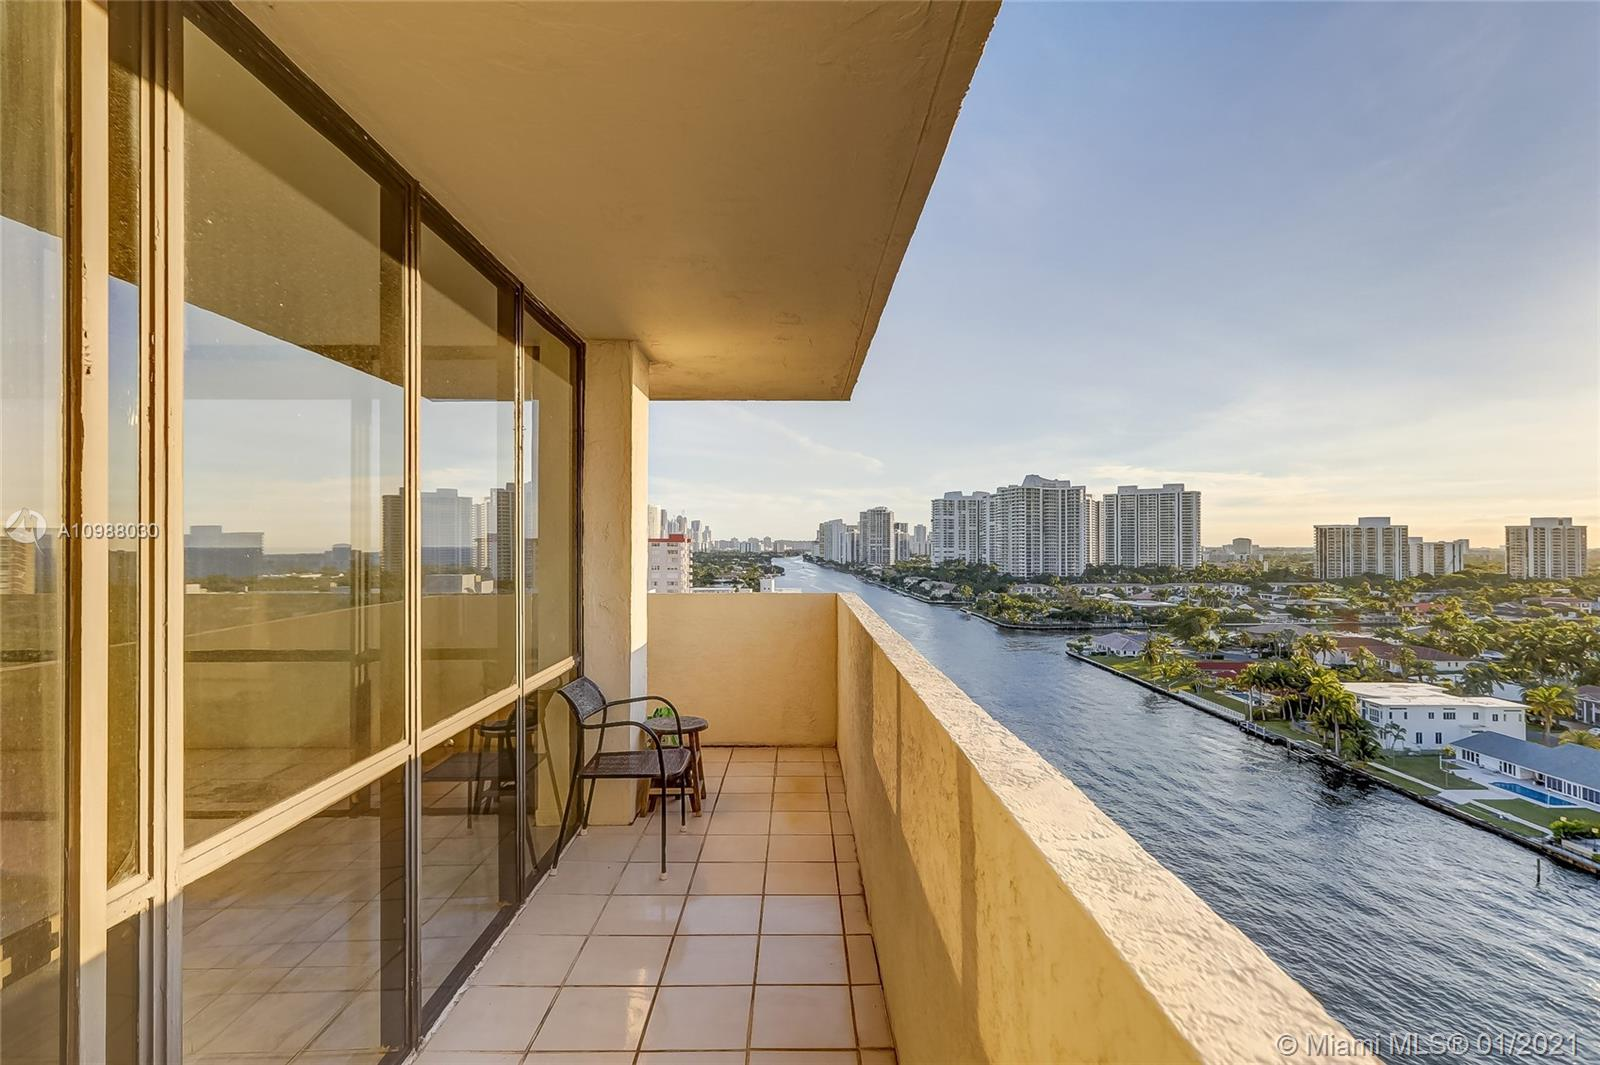 2017 S Ocean Dr # 10, Hallandale Beach, Florida 33009, 3 Bedrooms Bedrooms, ,2 BathroomsBathrooms,Residential,For Sale,2017 S Ocean Dr # 10,A10988030